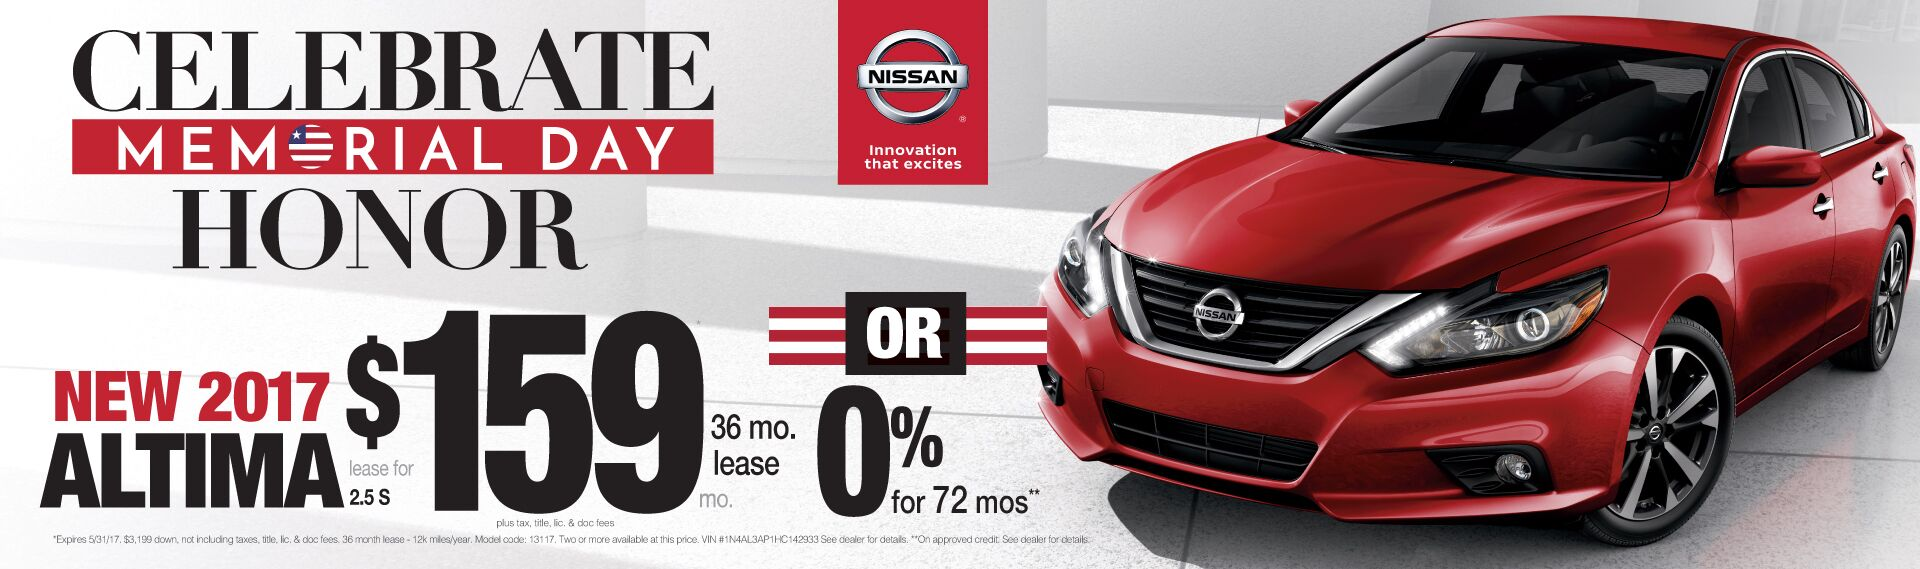 Celebrate Memorial Day With Savings On An Altima